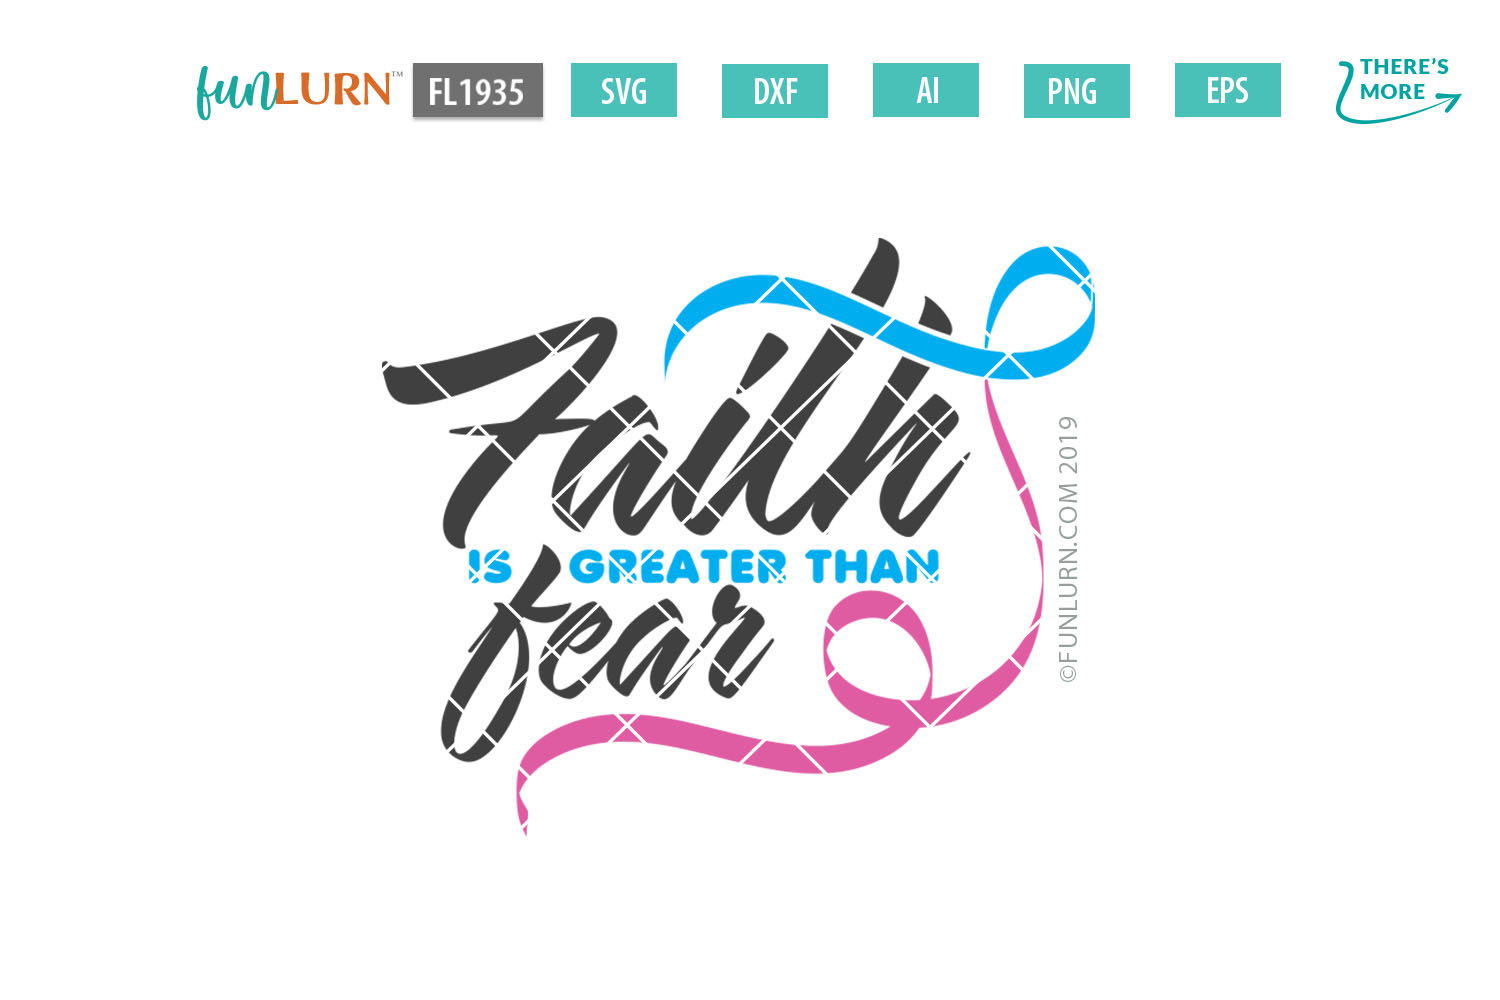 Faith is Greater Than Fear Blue and Pink Ribbon SVG Cut File example image 2